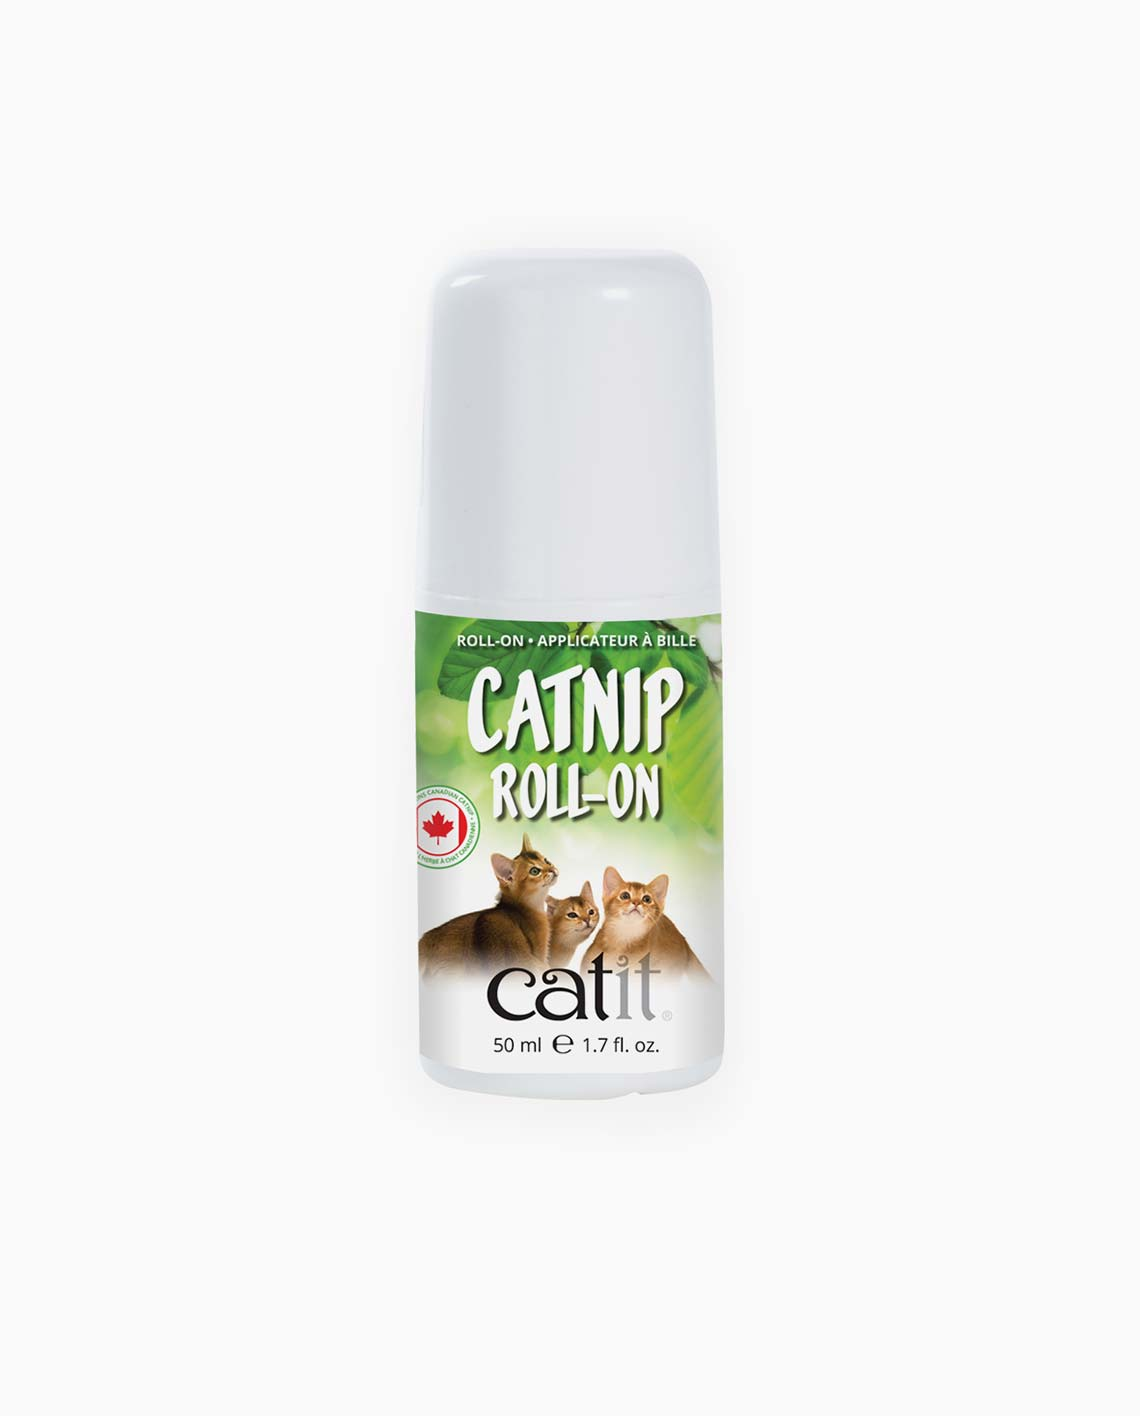 Product image of the catnip roller